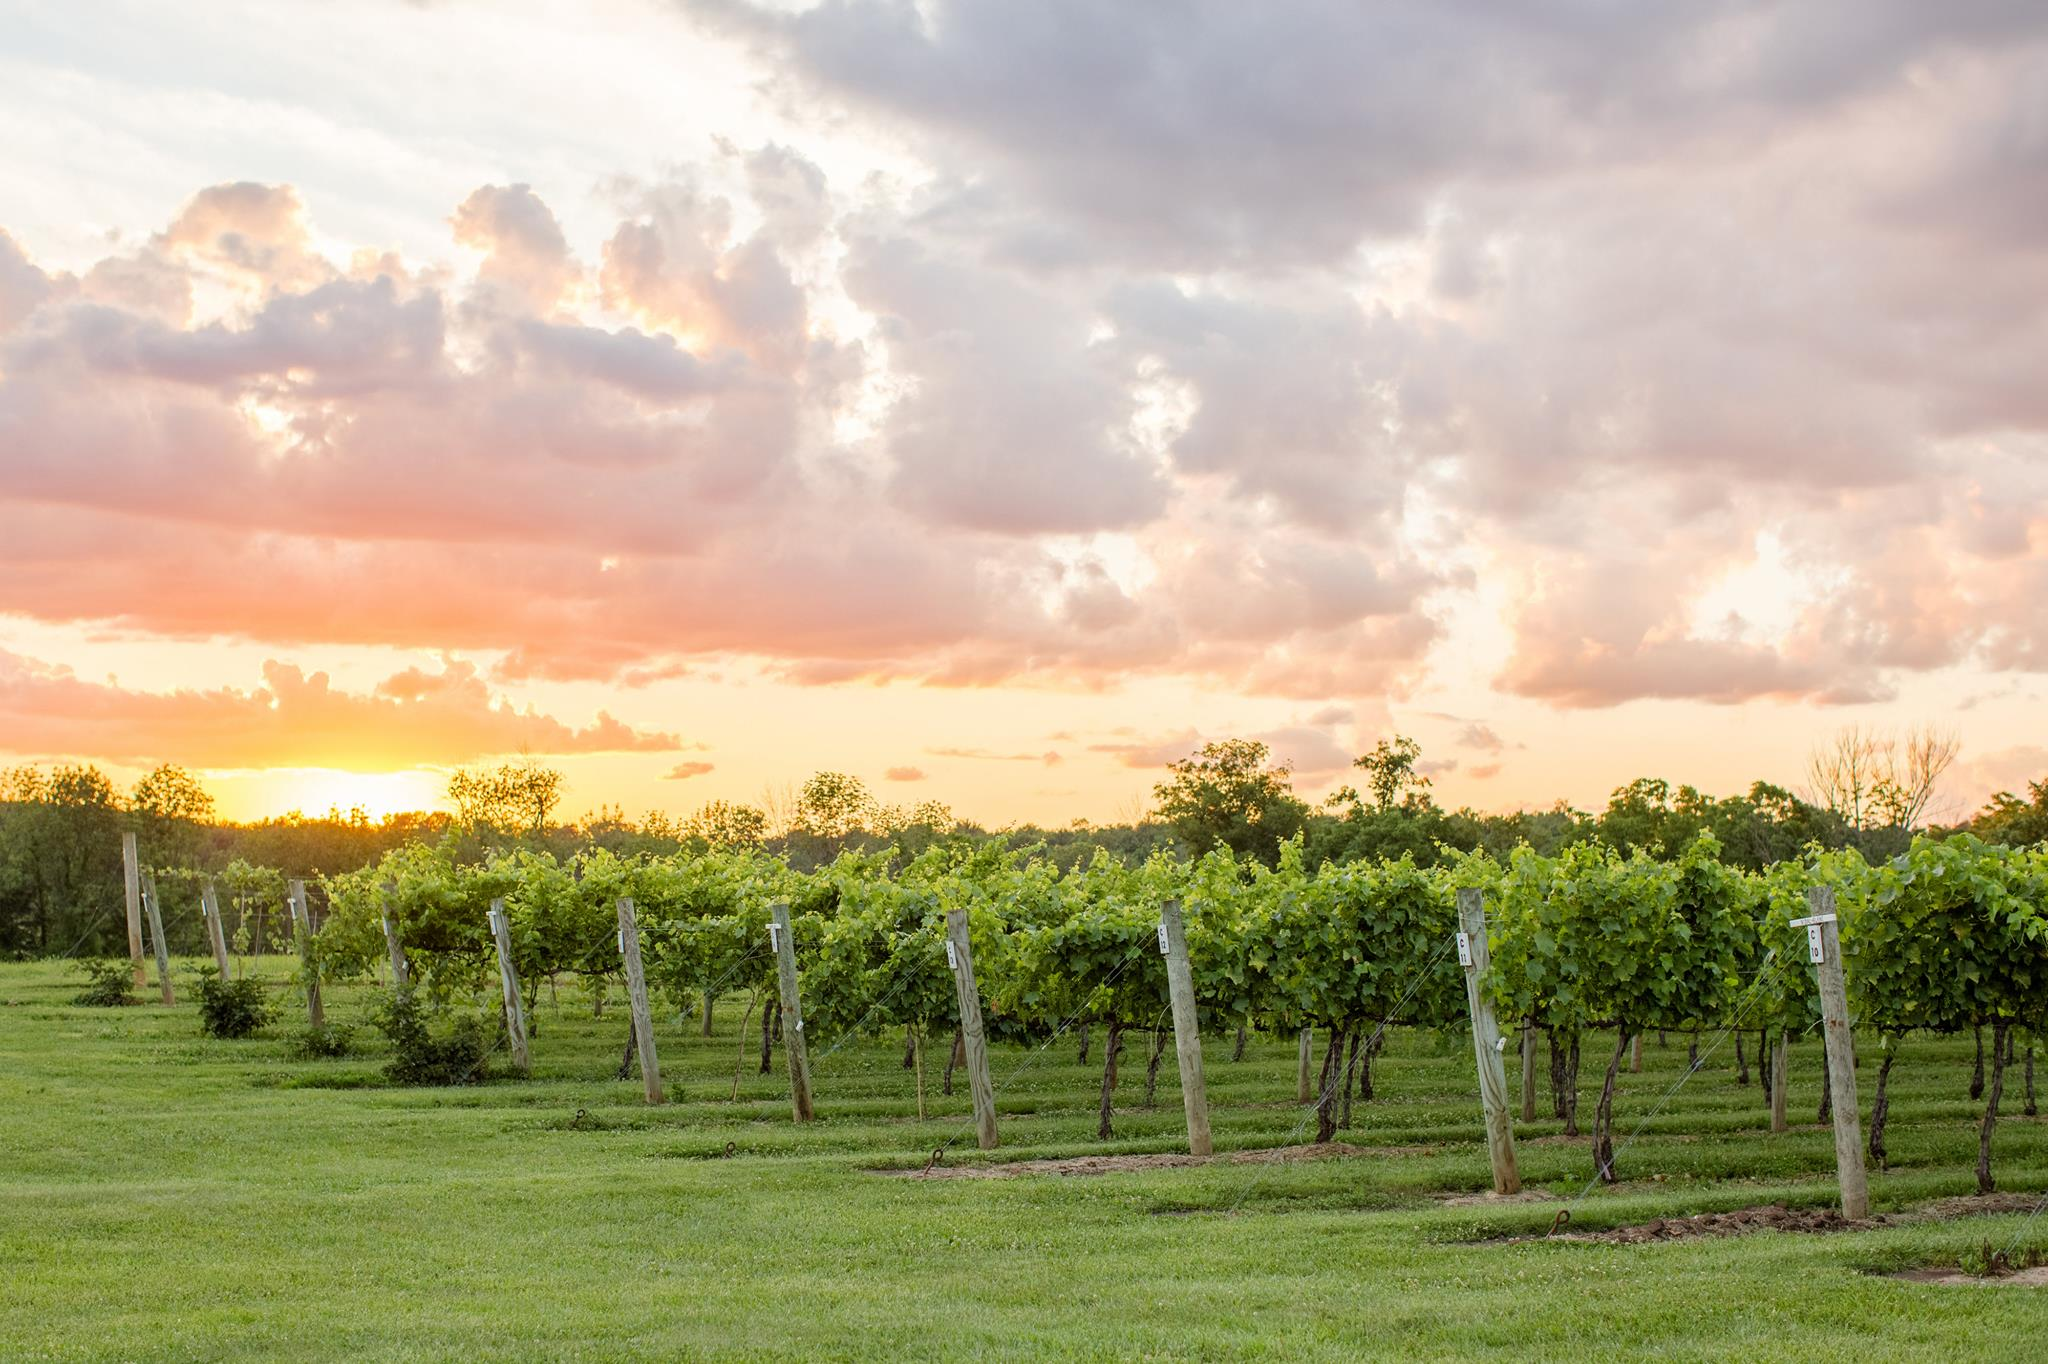 Road trip! Central Ohio wineries to launch new wine trail